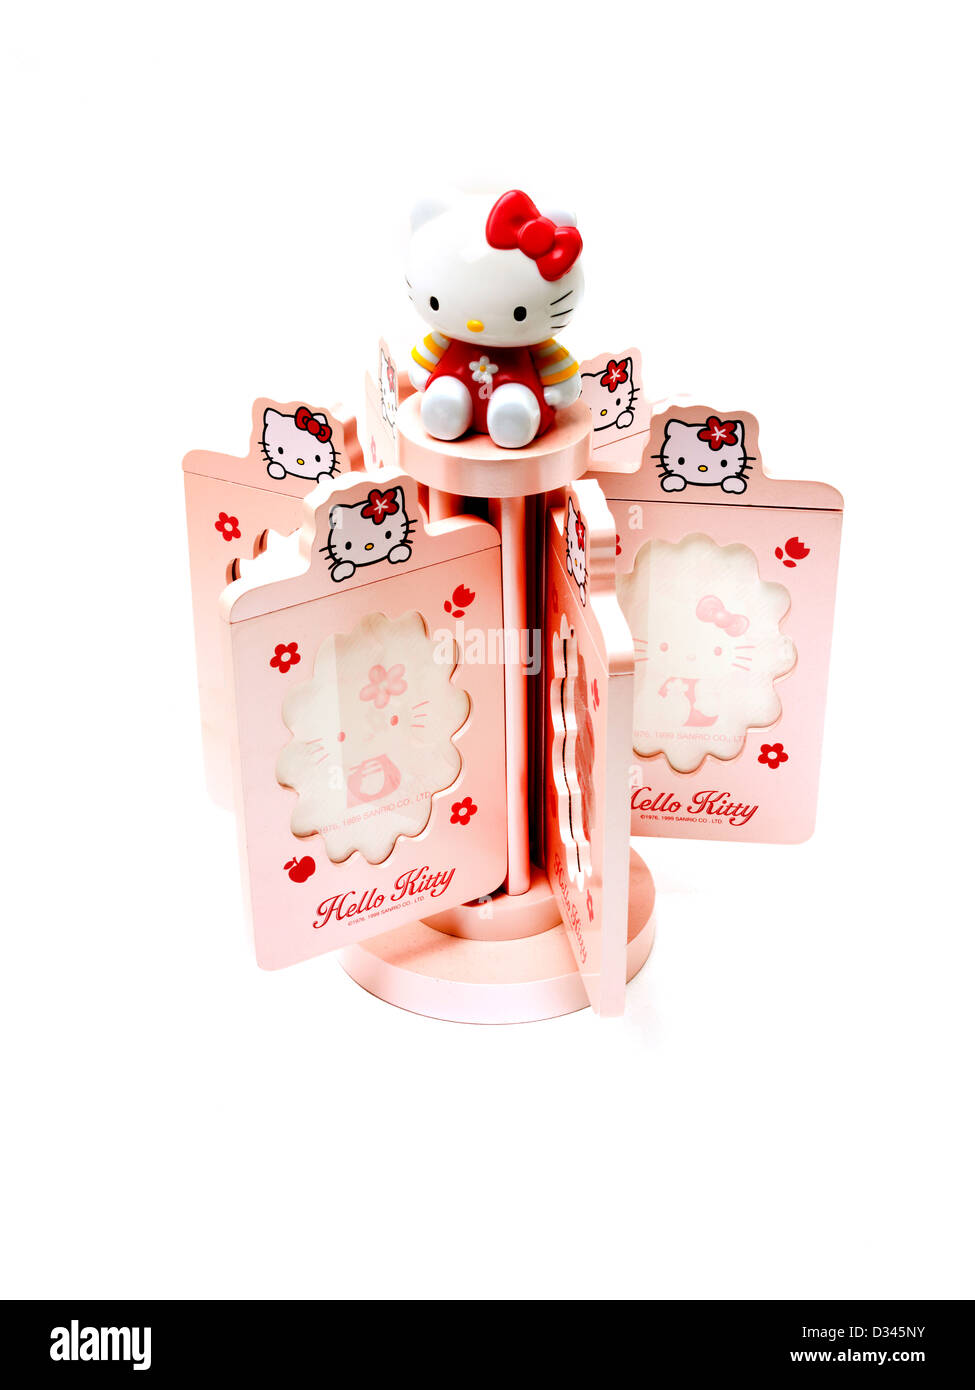 Cadres Photo Hello Kitty Banque D Images Photo Stock 53567415 Alamy